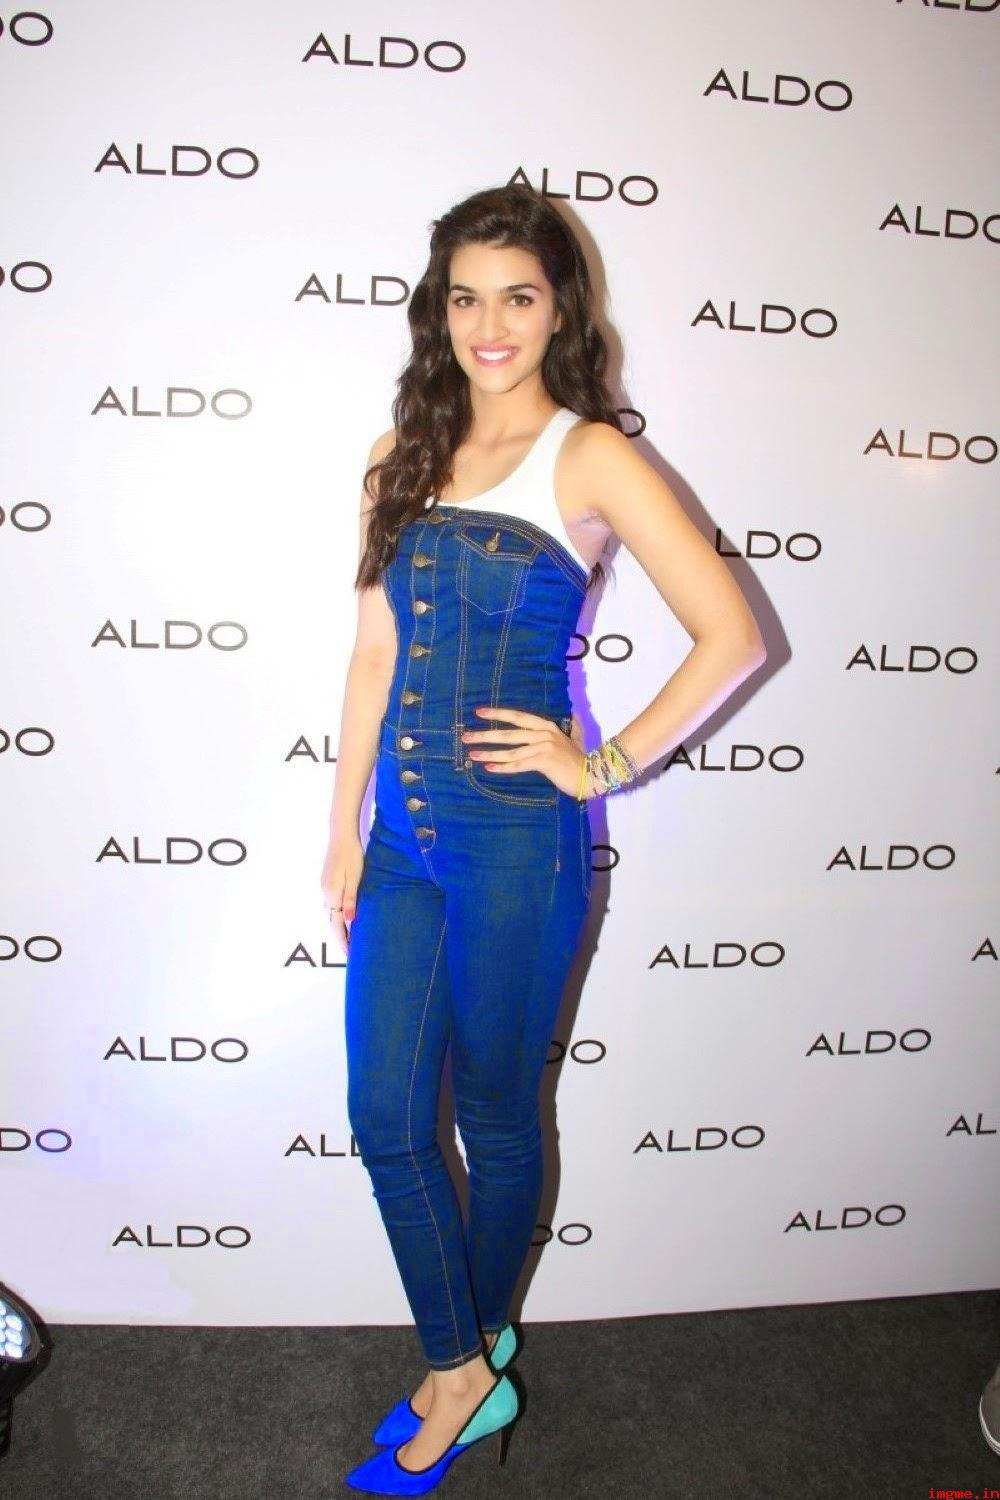 19 Kriti Sanon Pics - 30 Cute Kriti Sanon Outfits and Looks